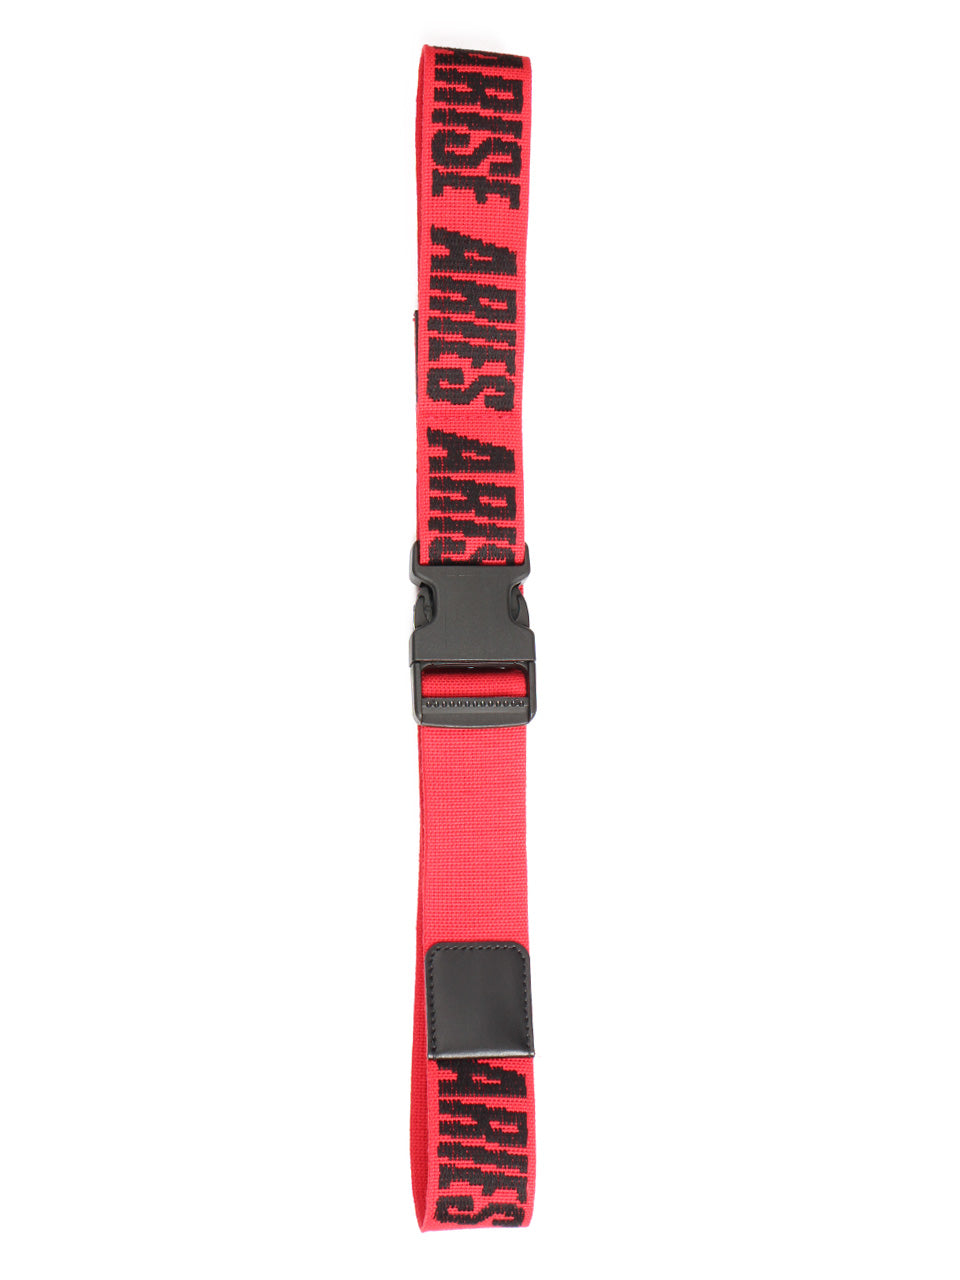 Madeup Belt (red)